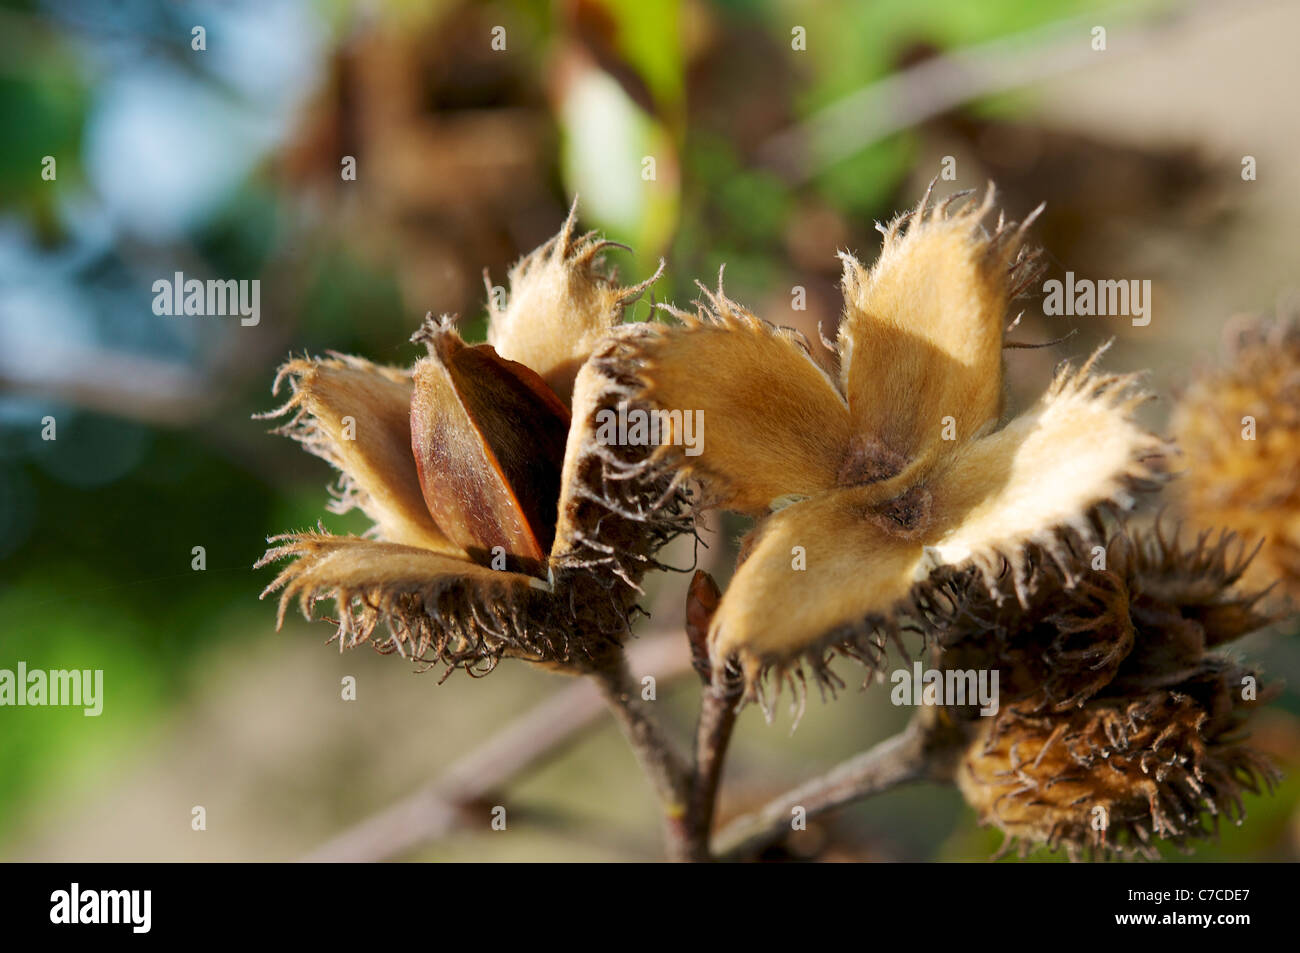 Beech Nut Stock Photos Beech Nut Stock Images Alamy